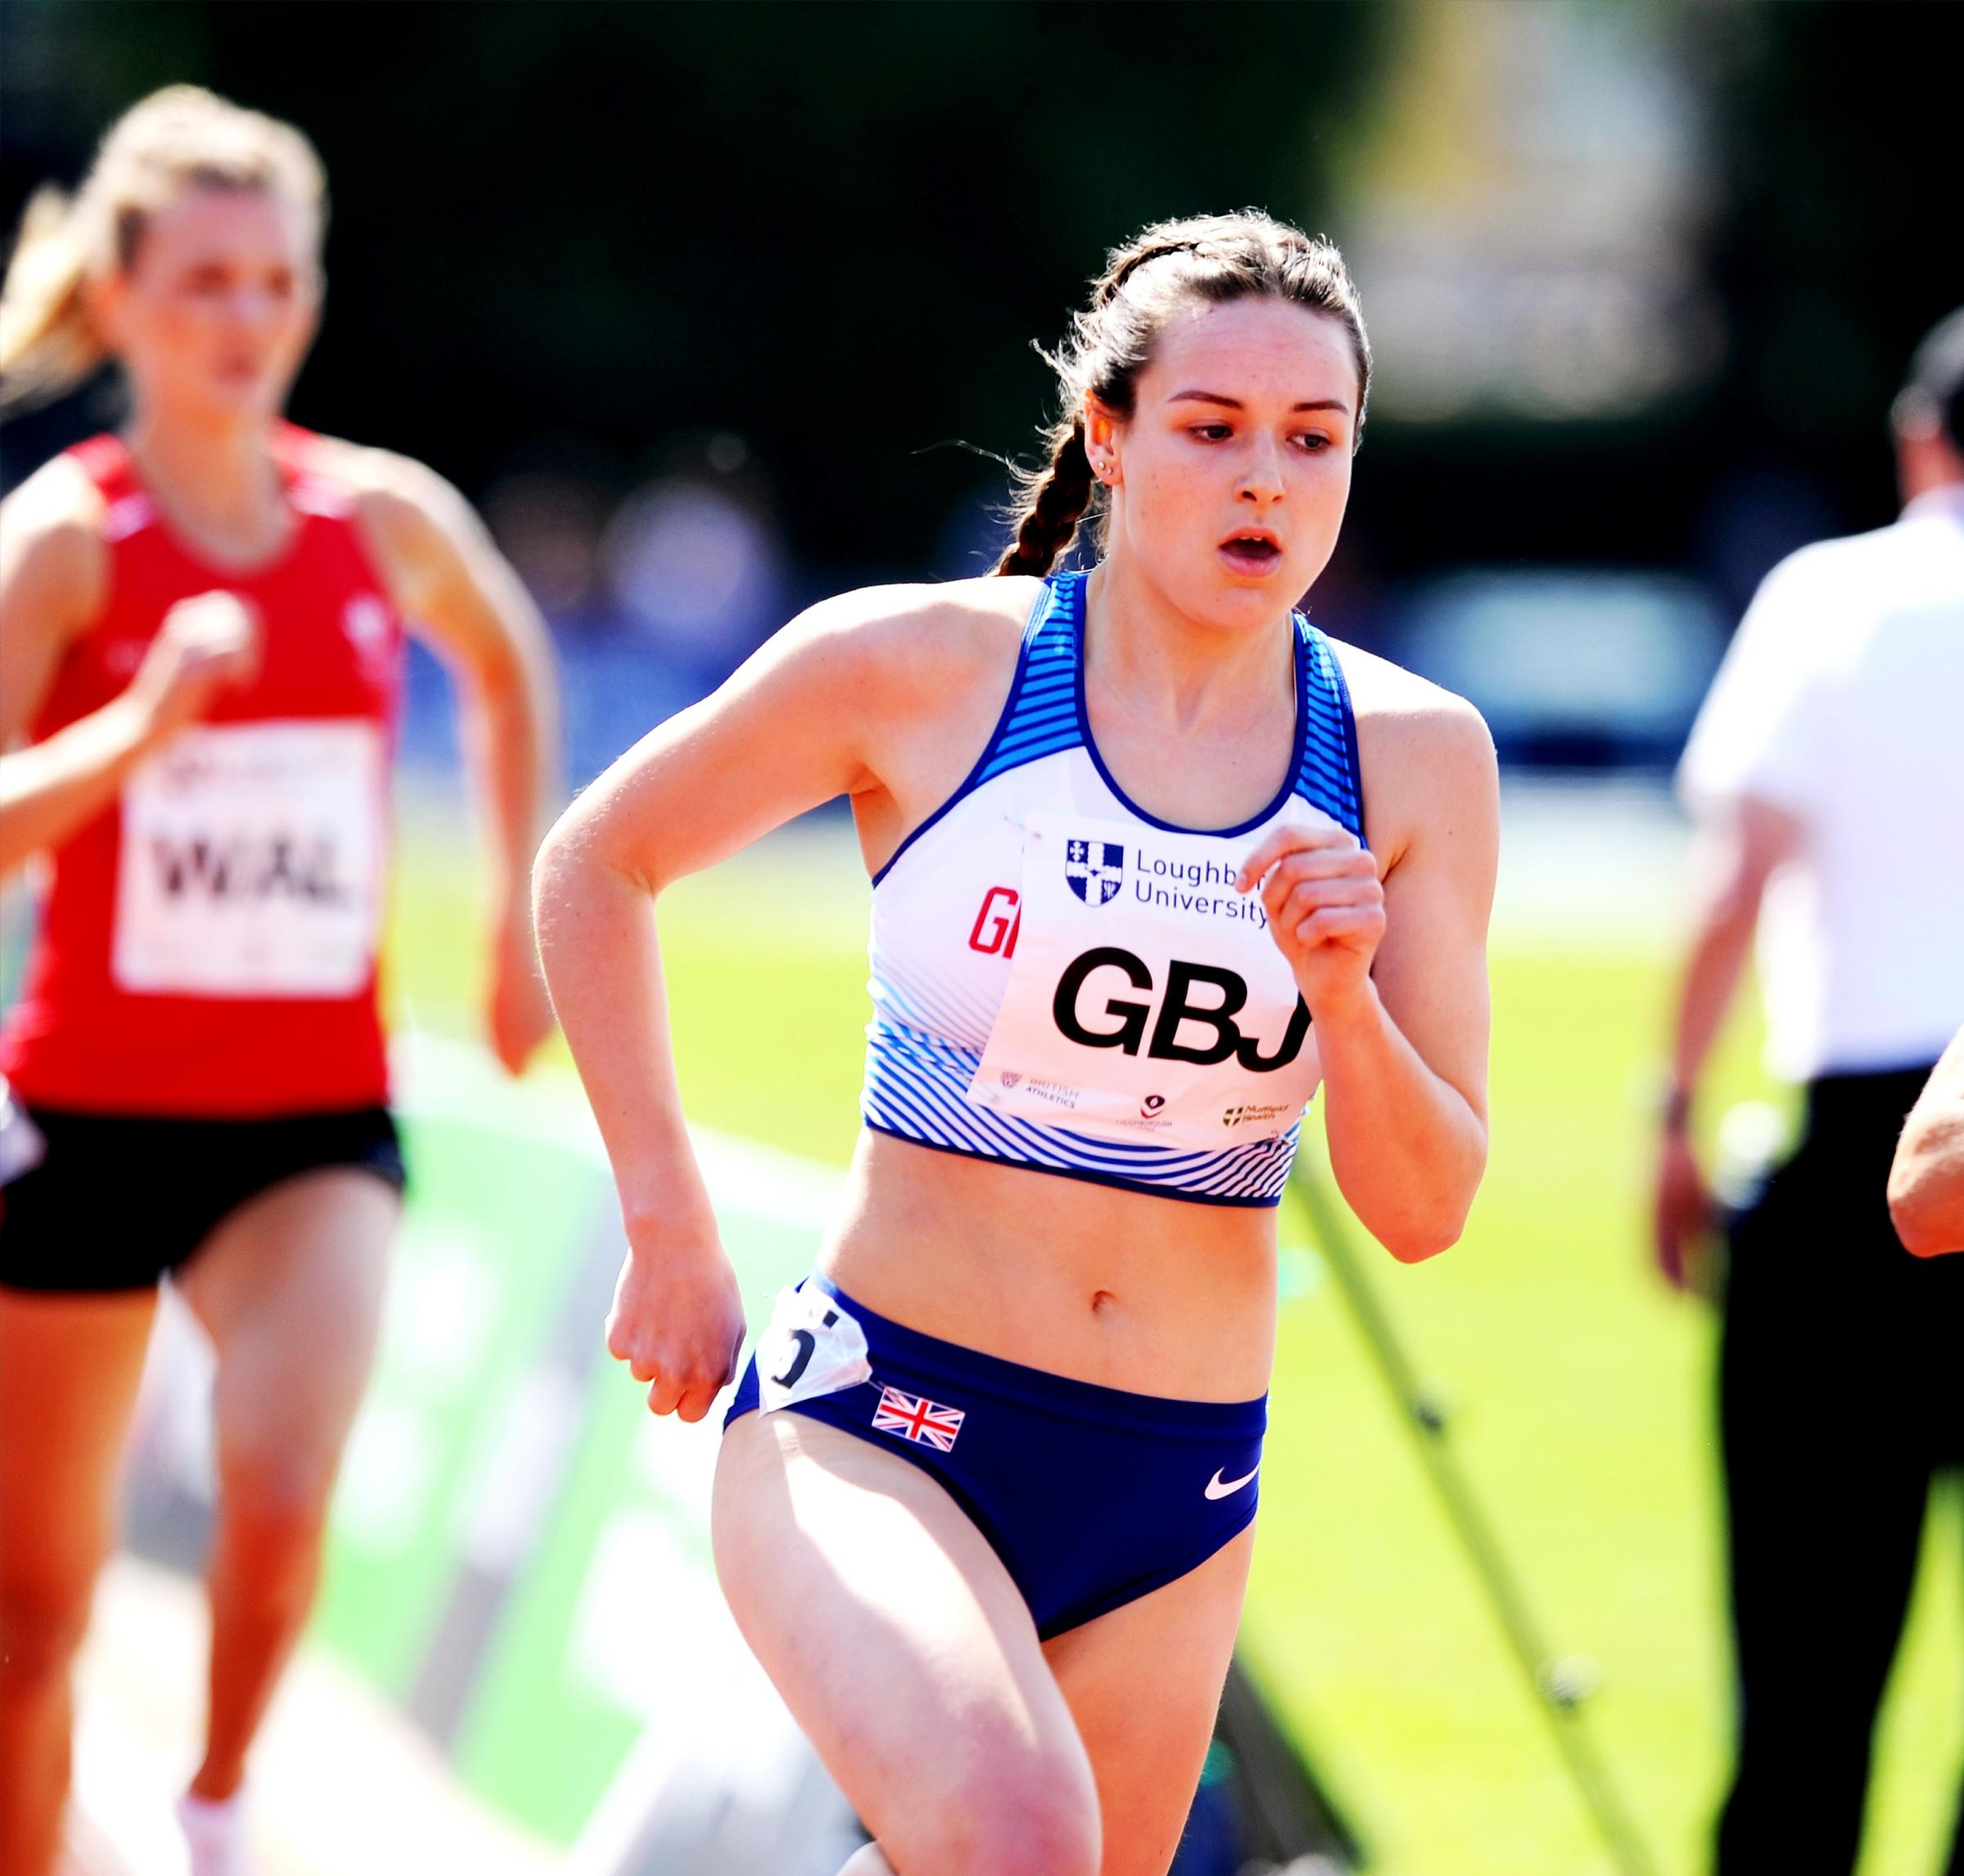 Enfield's Isabelle Boffey is hoping to impress Team GB coaches at the  IAAF World Junior Championships this week. Picture: Mark Shearman.